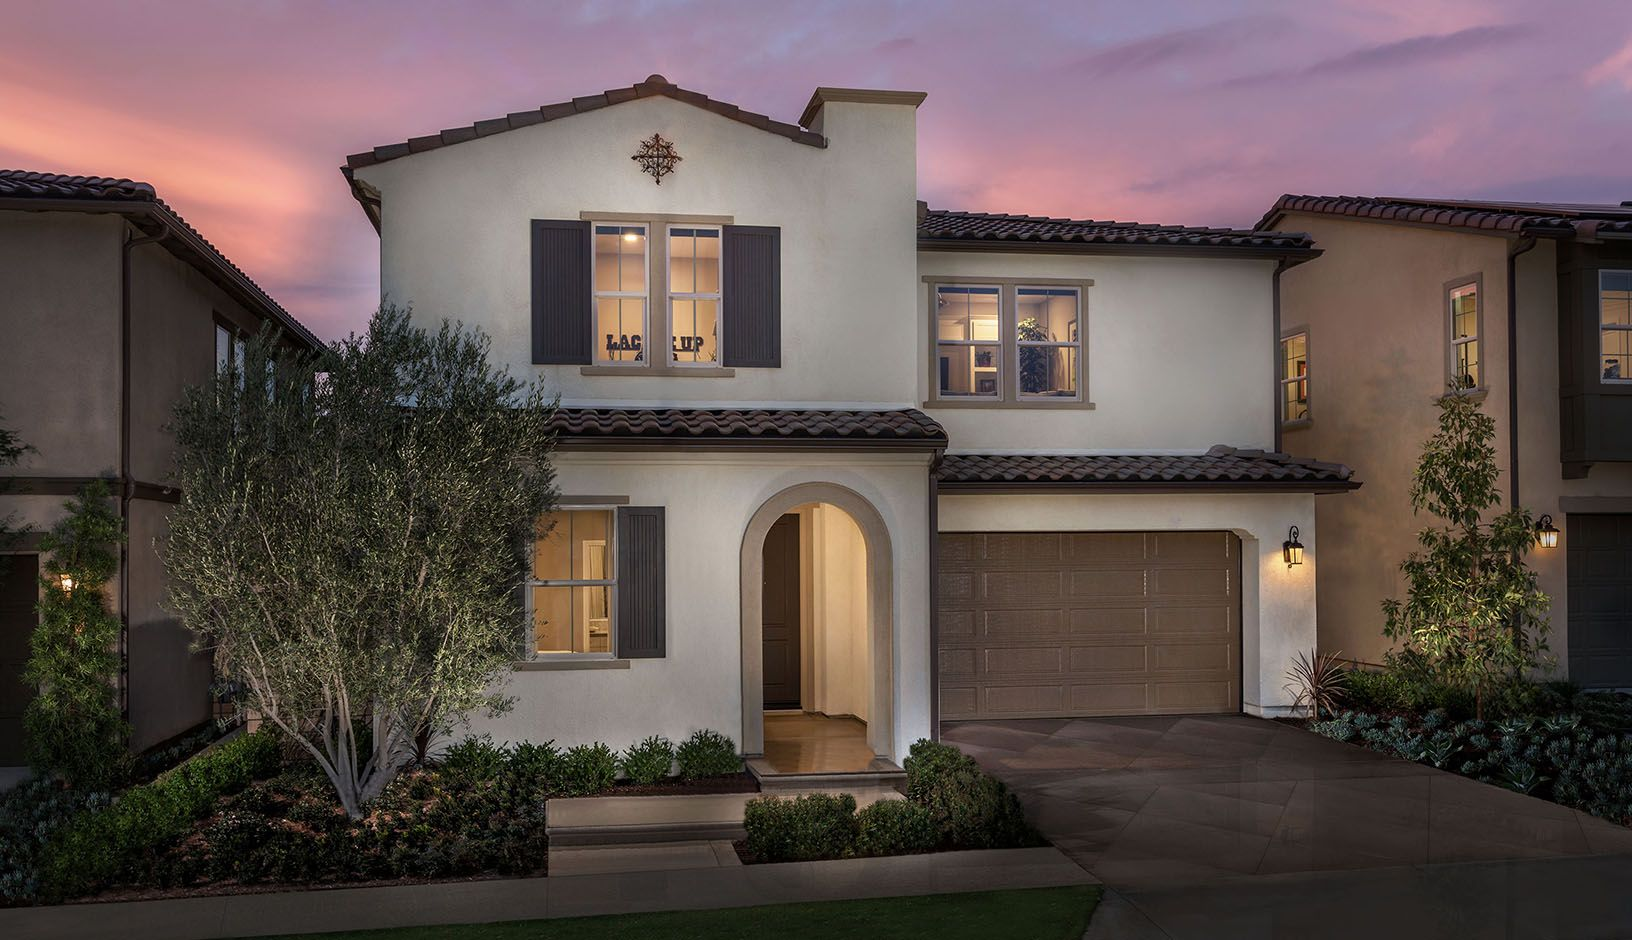 Single Family for Sale at Alston - Residence 2 4541 East Galen Drive Anaheim, California 92807 United States